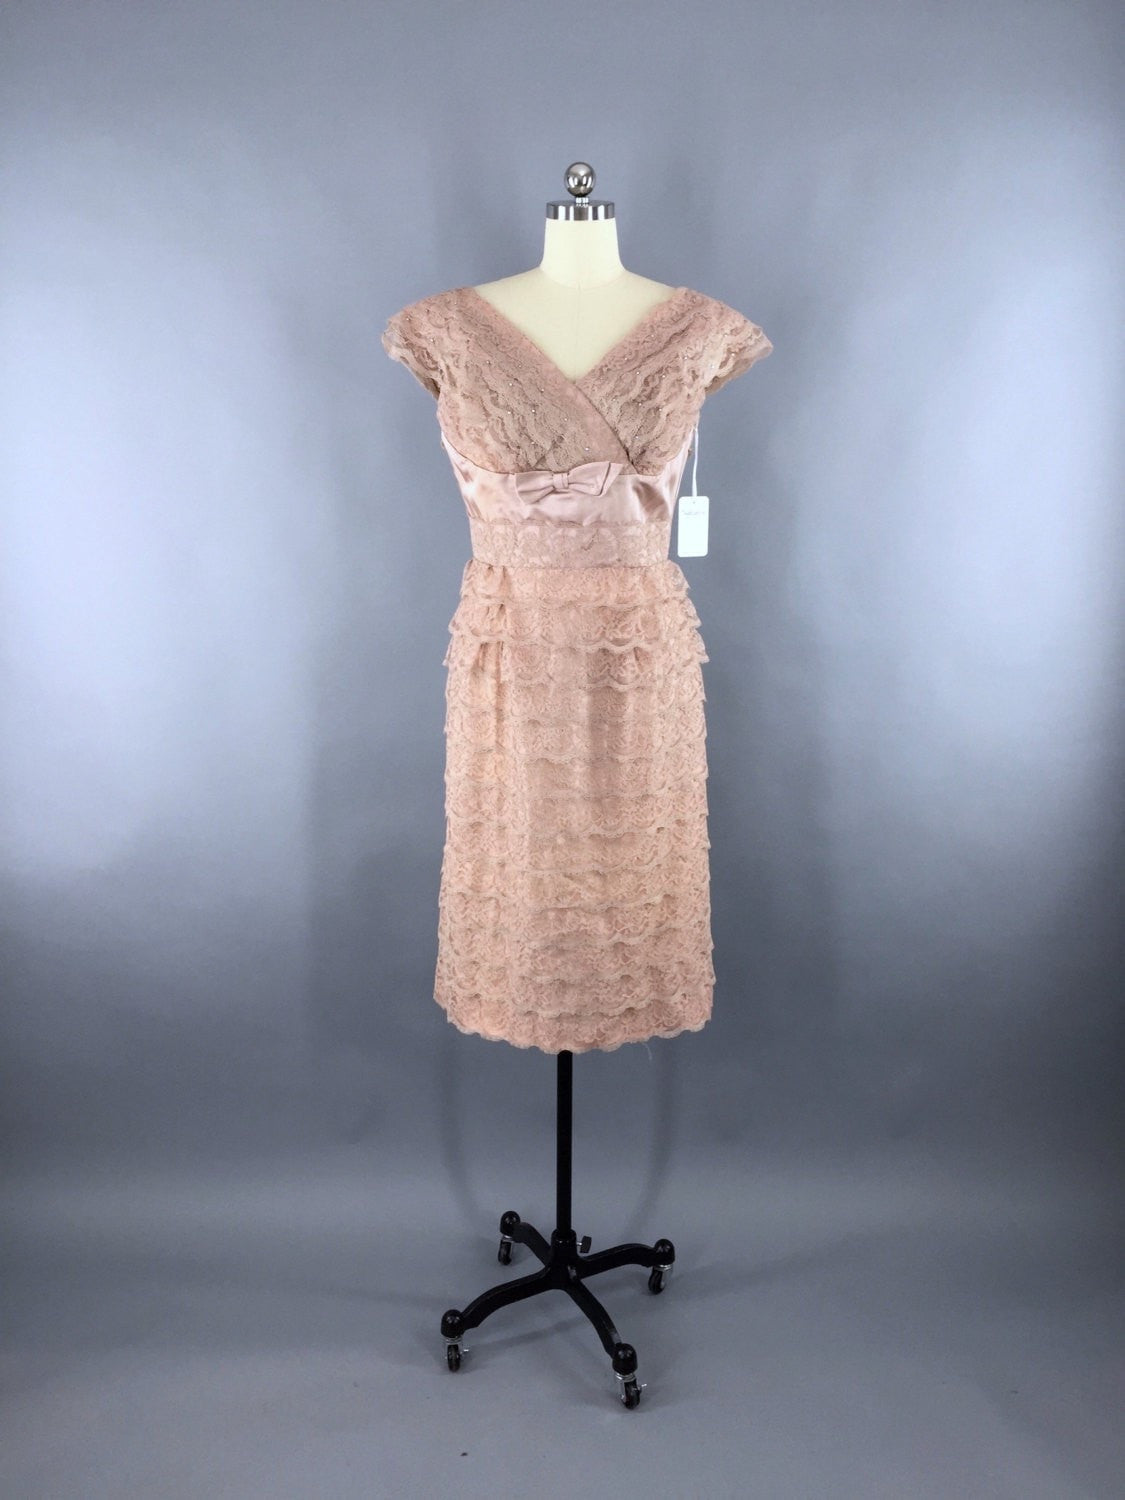 2d120ae77f Vintage 1950s Dress   Blush Lace Cocktail Dress   Original Tags Dress  ThisBlueBird